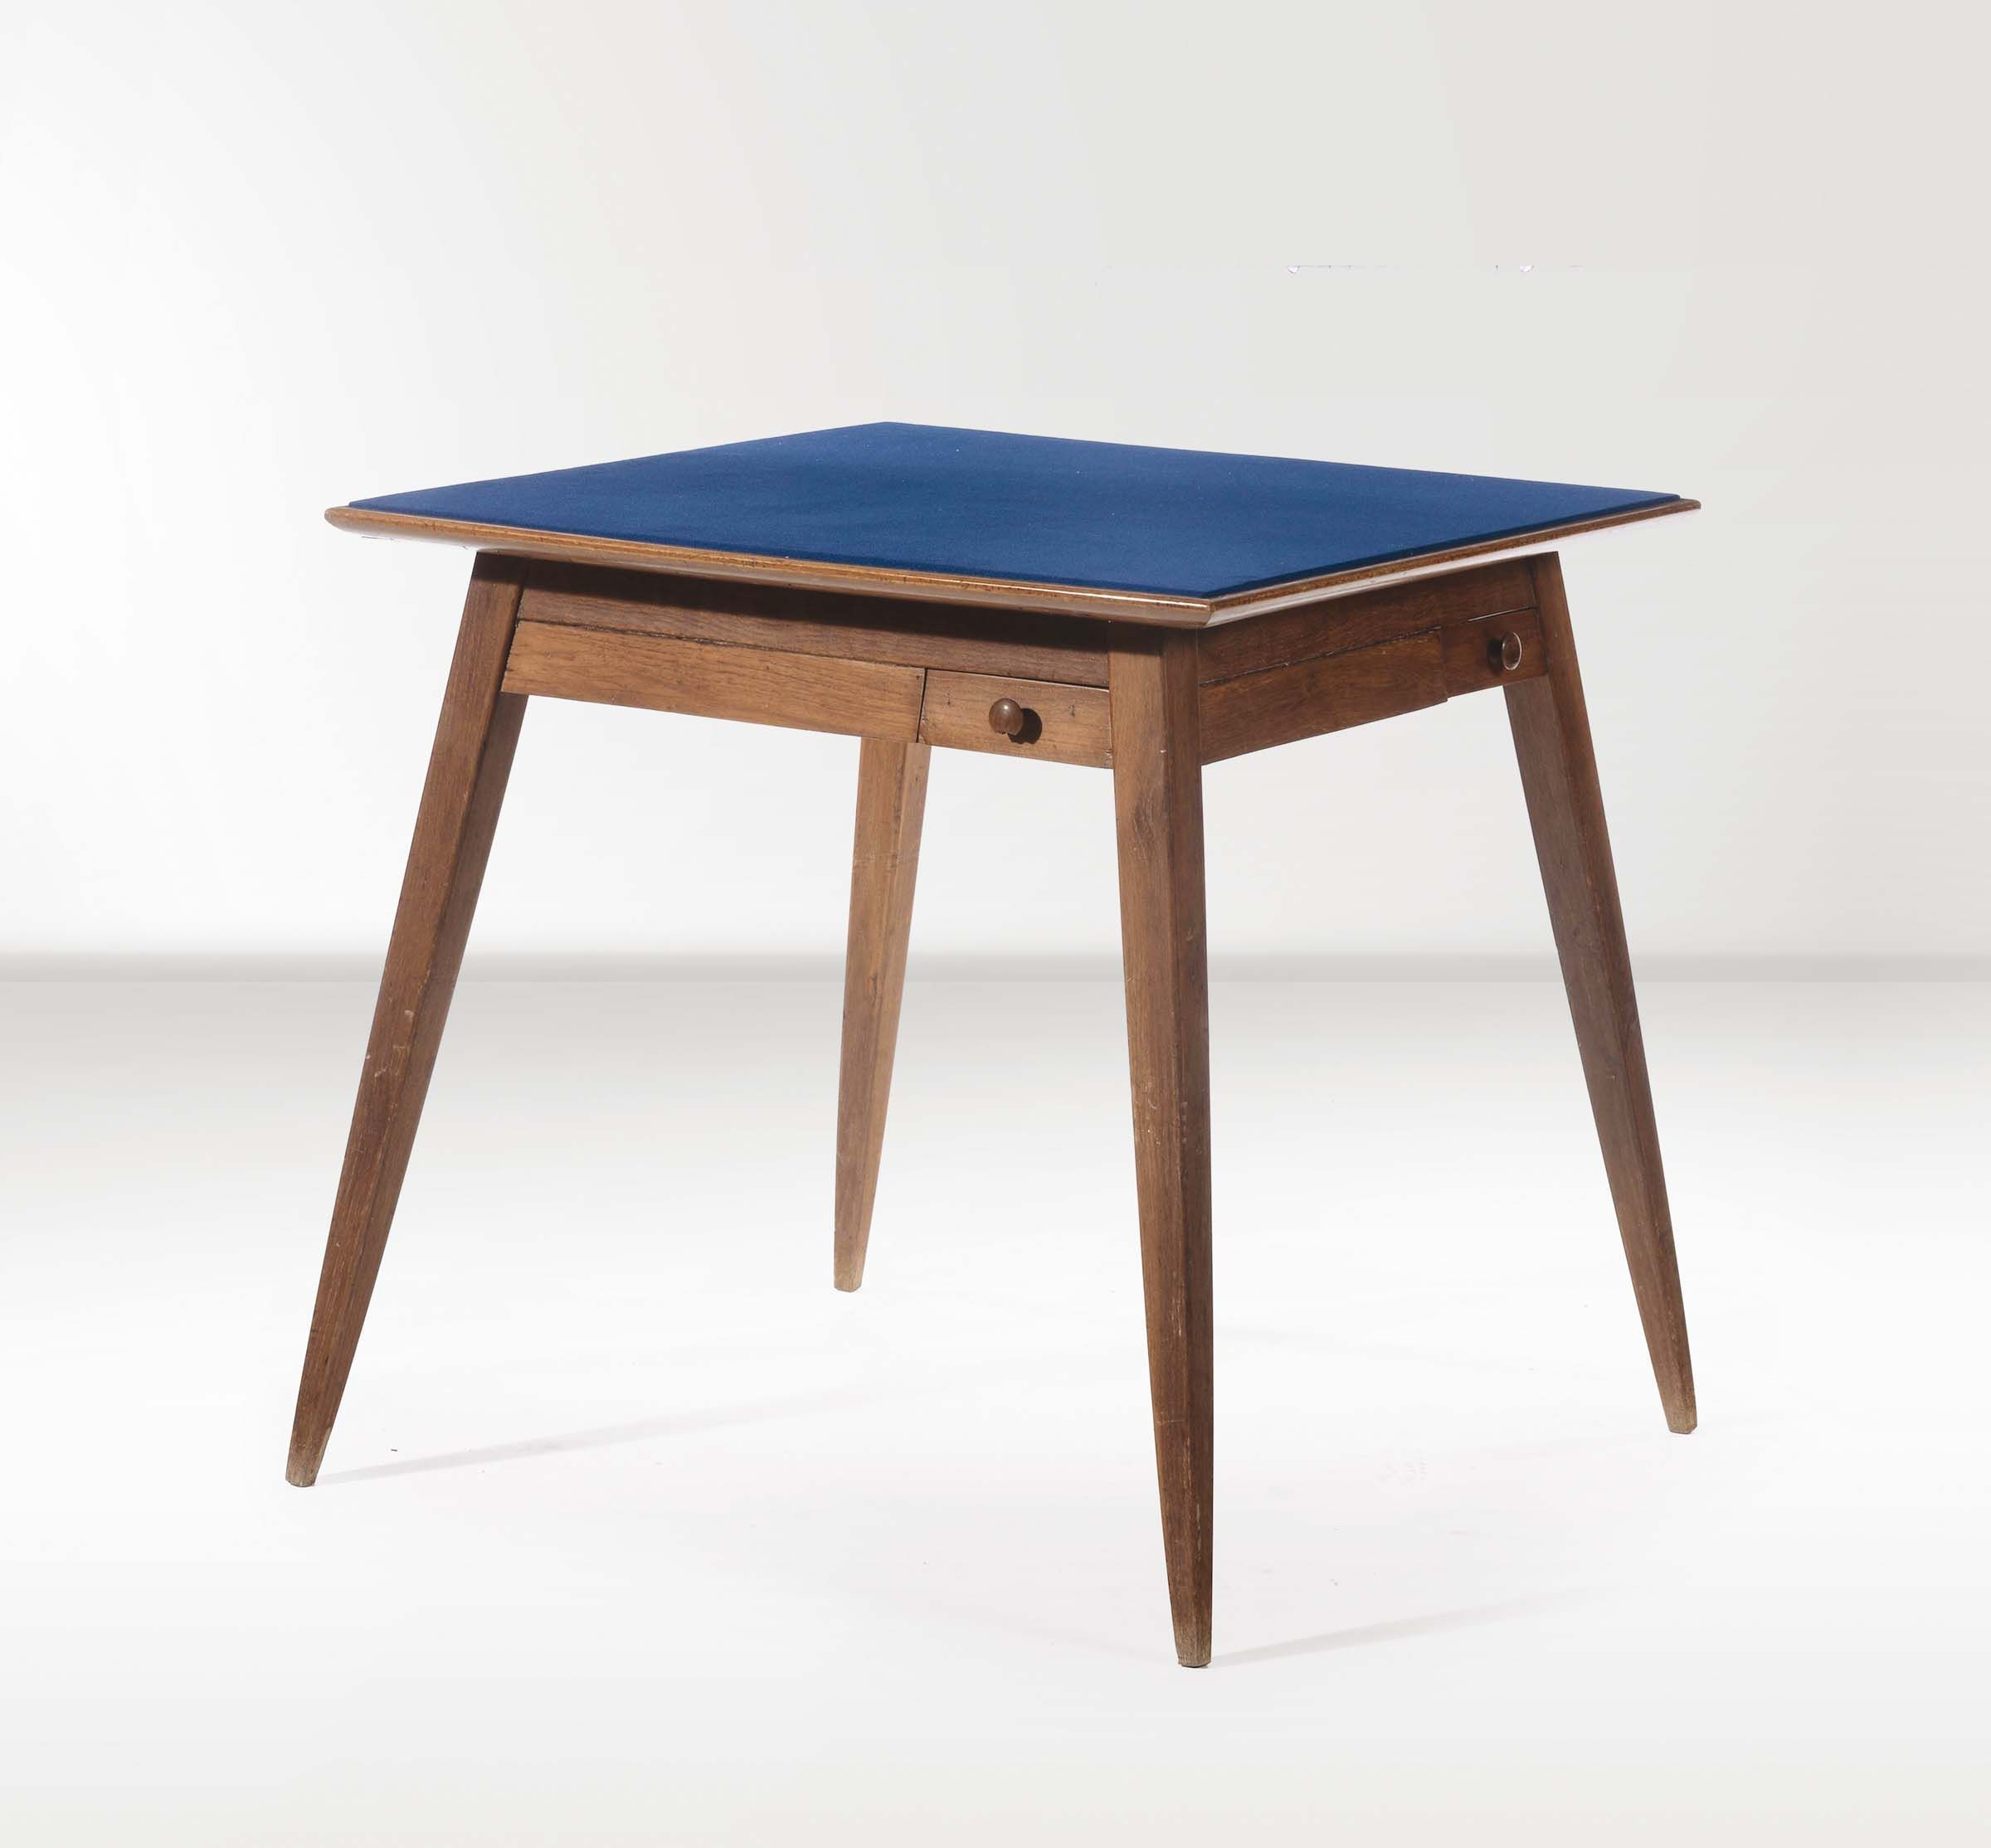 Gio Ponti, Unique Oak Game Table for the Mazzocchi Residence, 1950s.